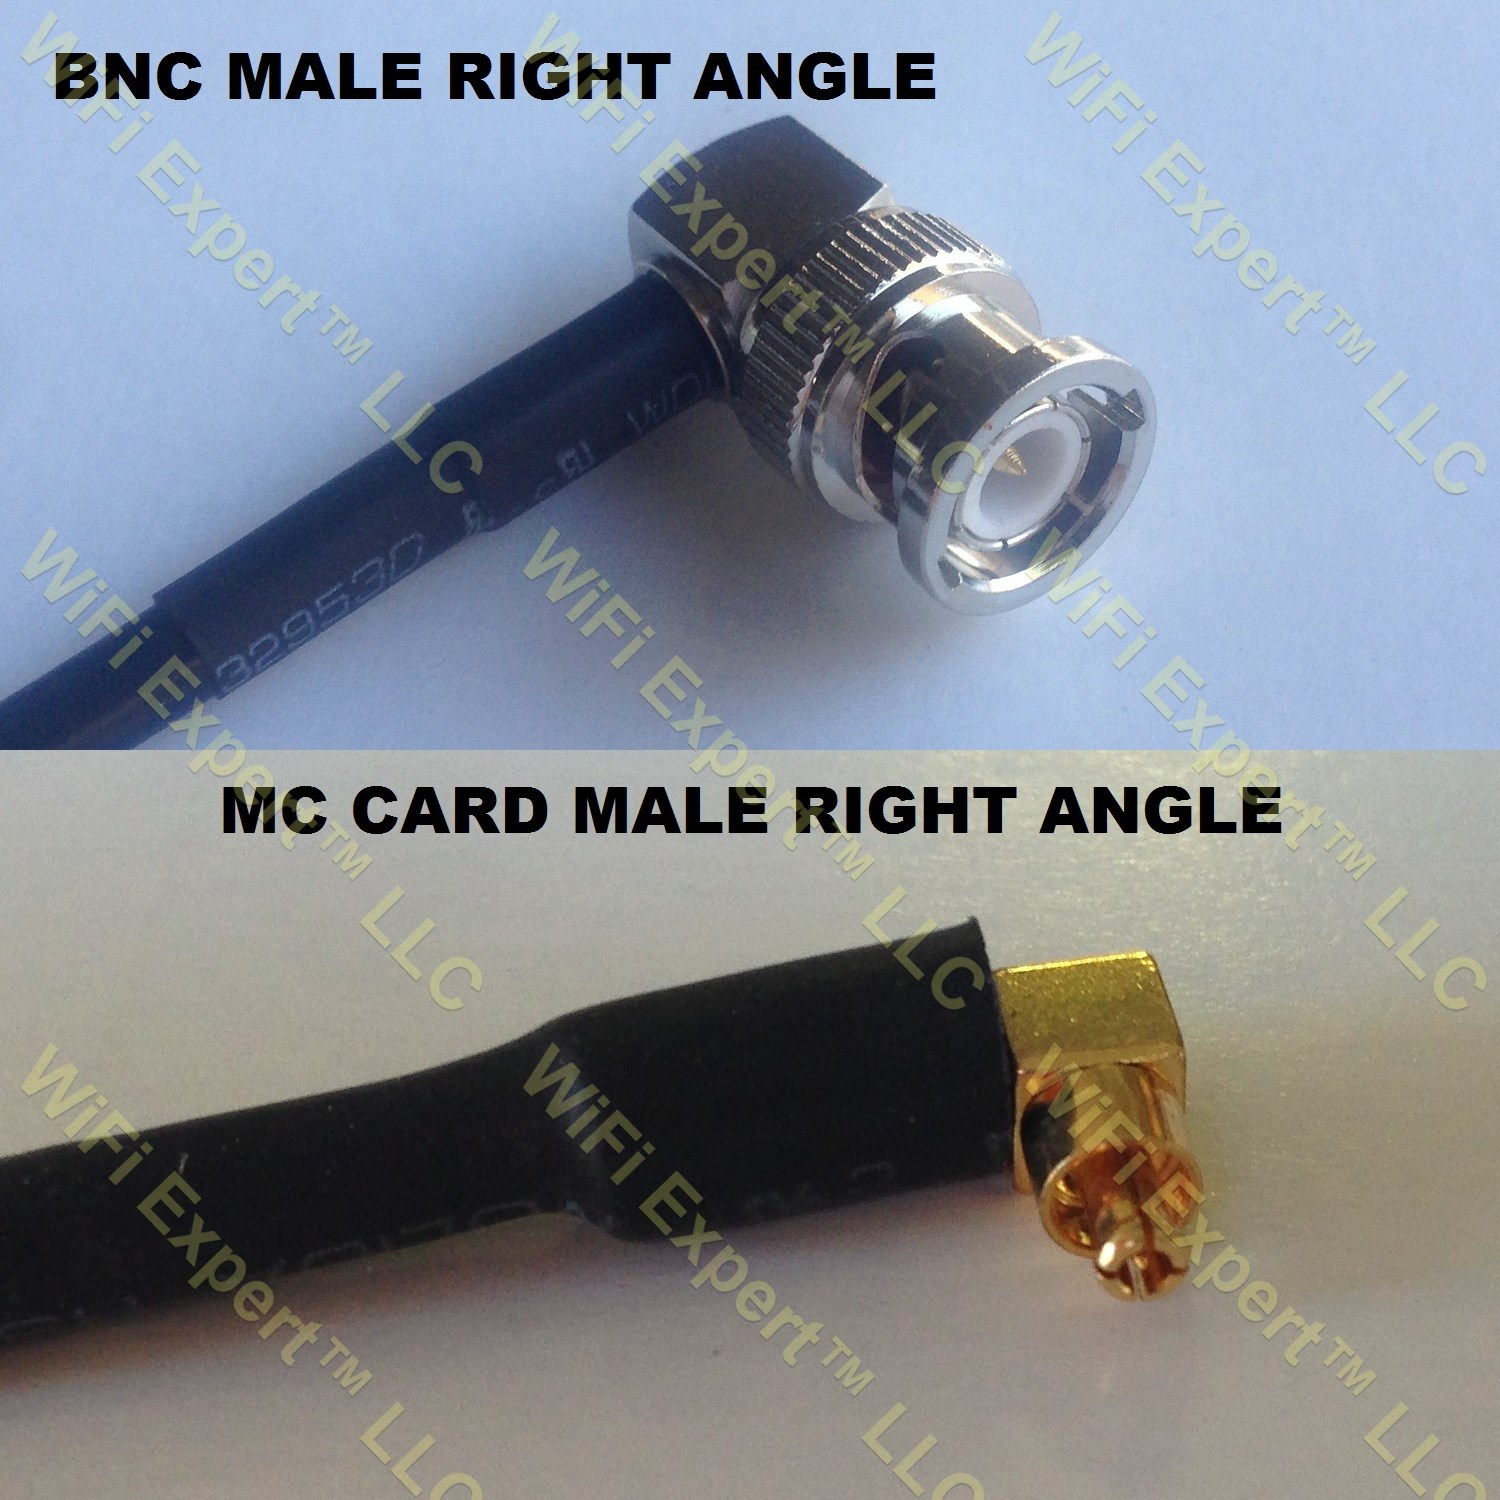 Rg316 Bnc Male Angle To Mc Card Male Angle Coaxial Rf